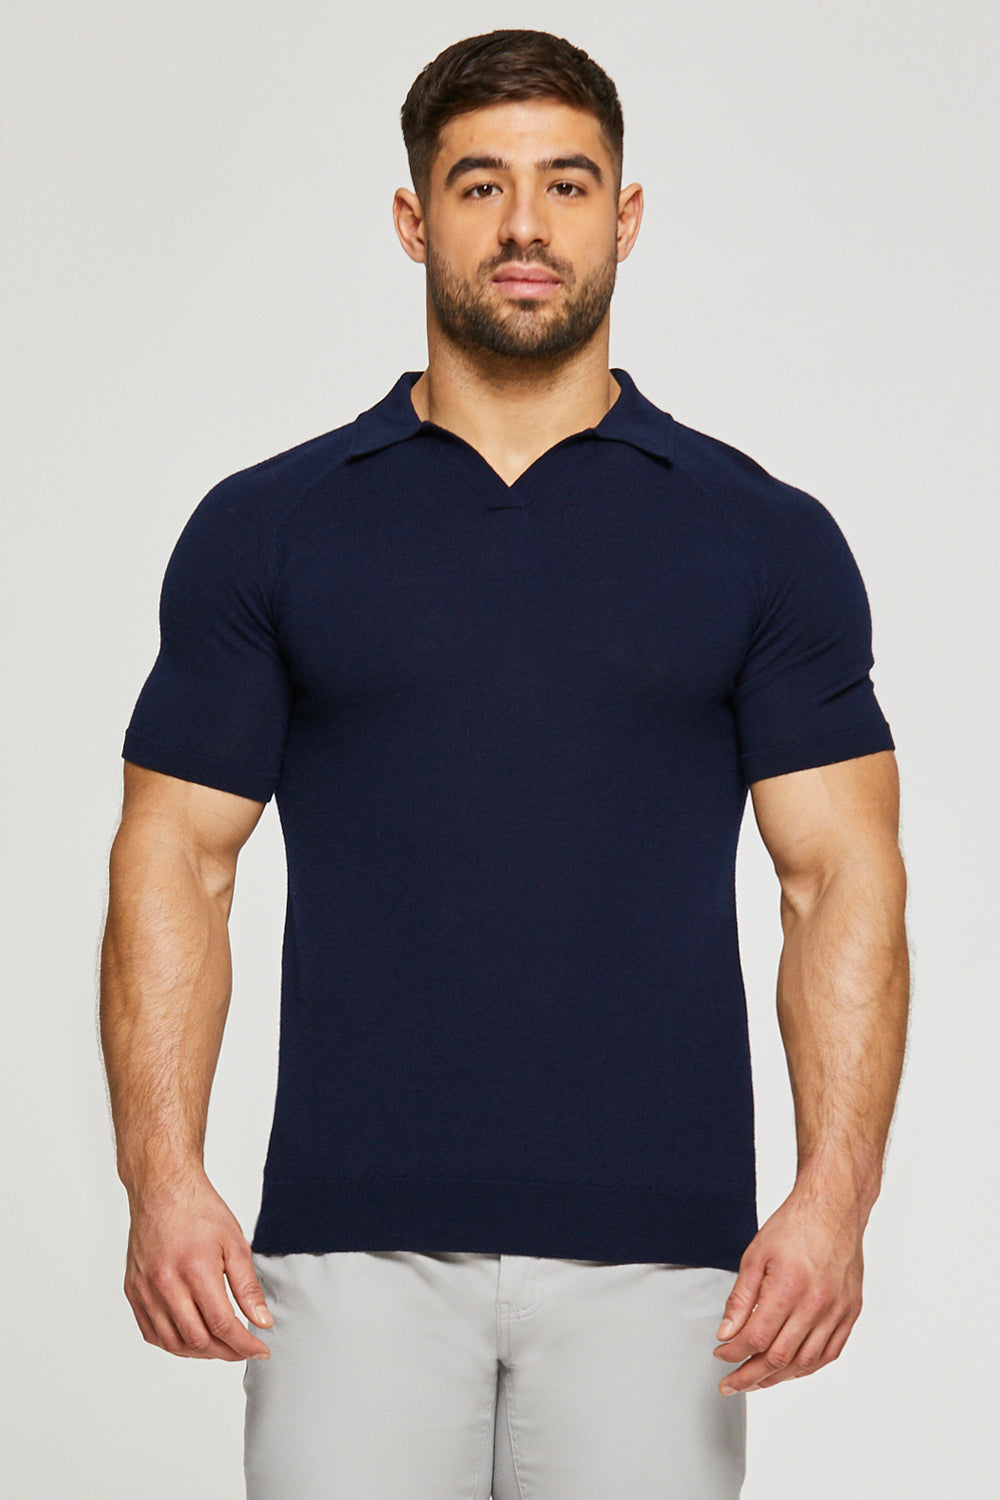 Merino Wool Buttonless Polo Shirt in Navy